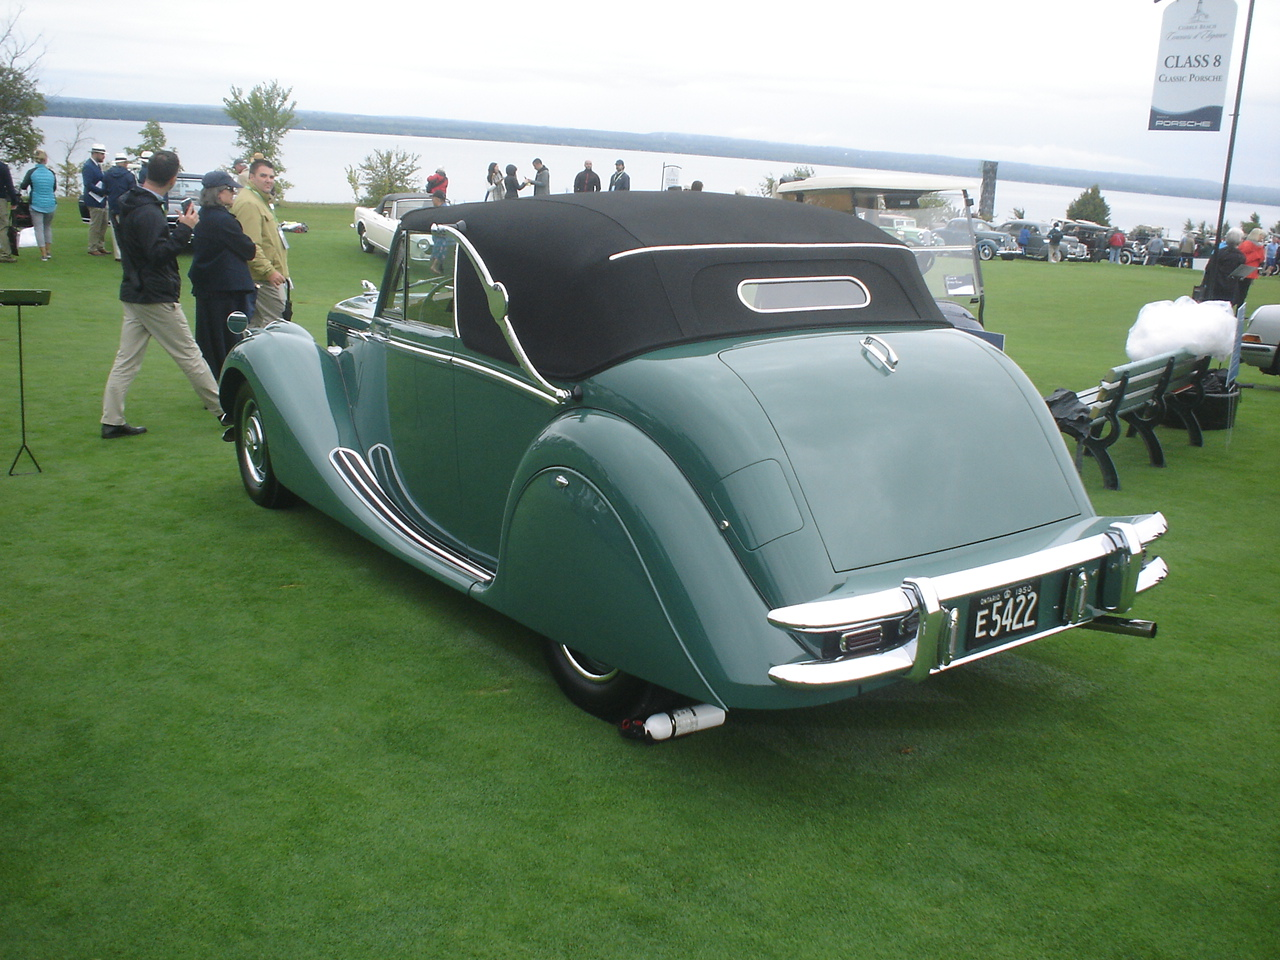 1950 Jaguar Mark V Drophead Coupe -4.JPG